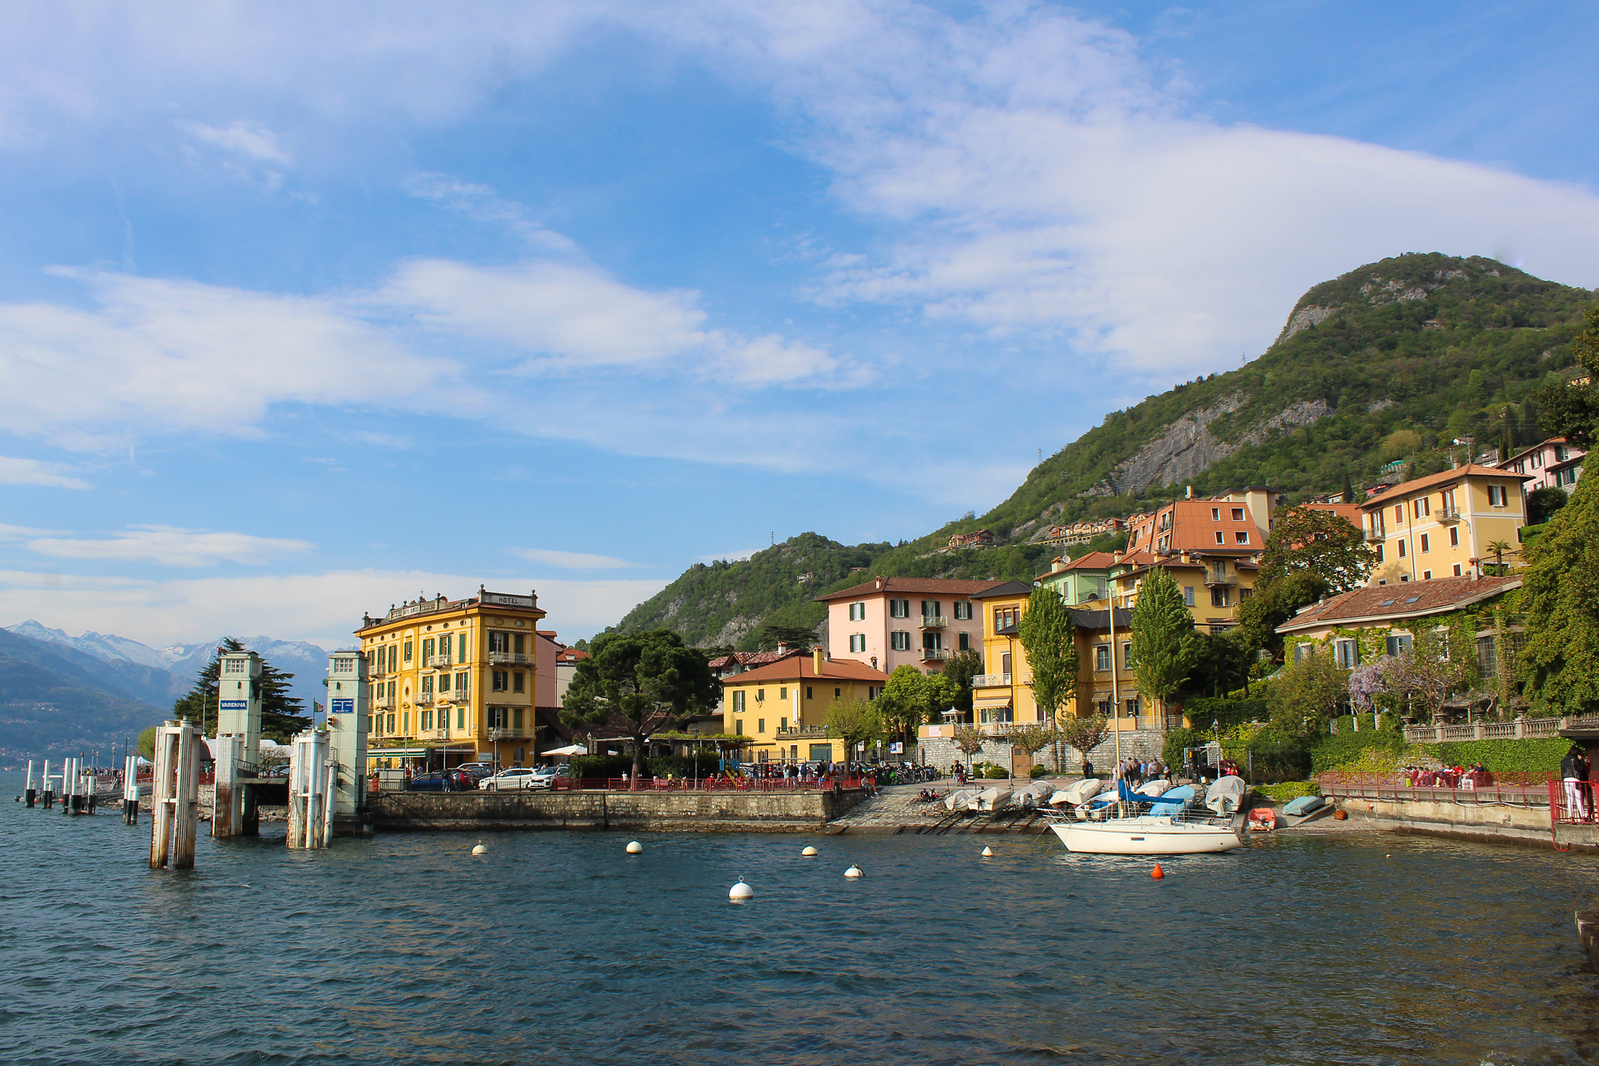 on a day trip to lake como from milan don't skip varenna